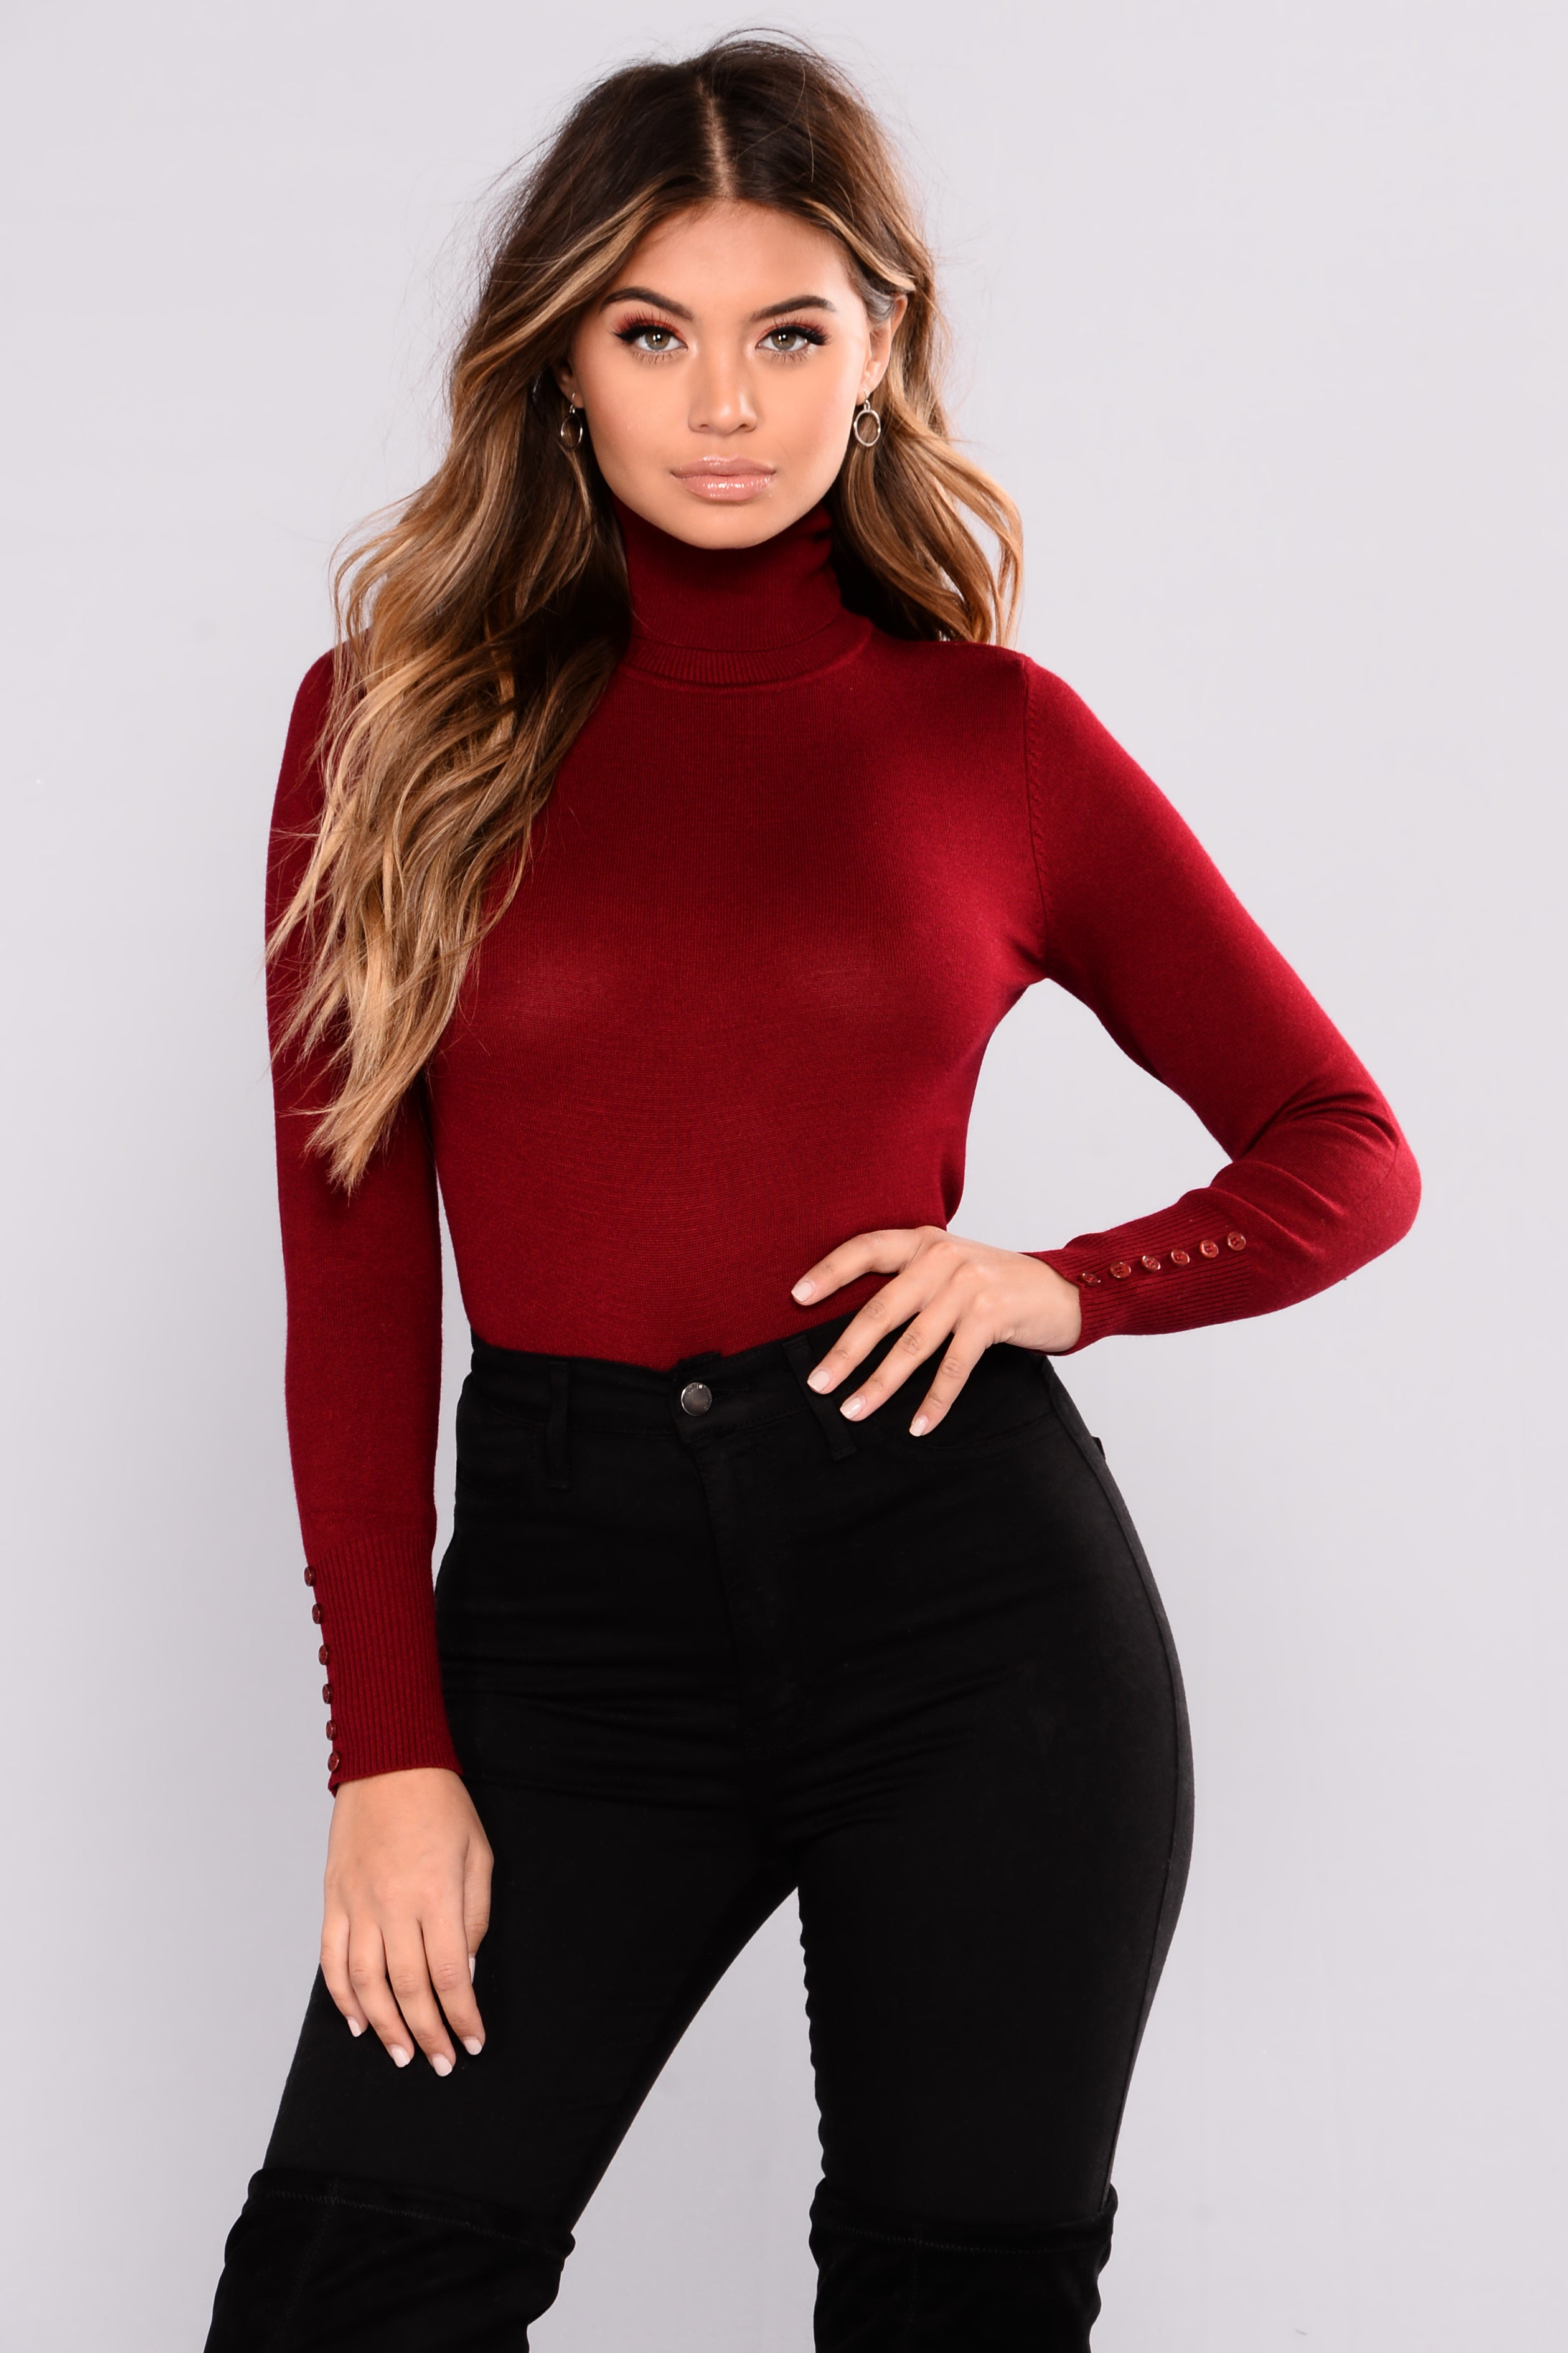 64642e633a978 https   www.fashionnova.com products keep-dreaming-booty-shaping ...